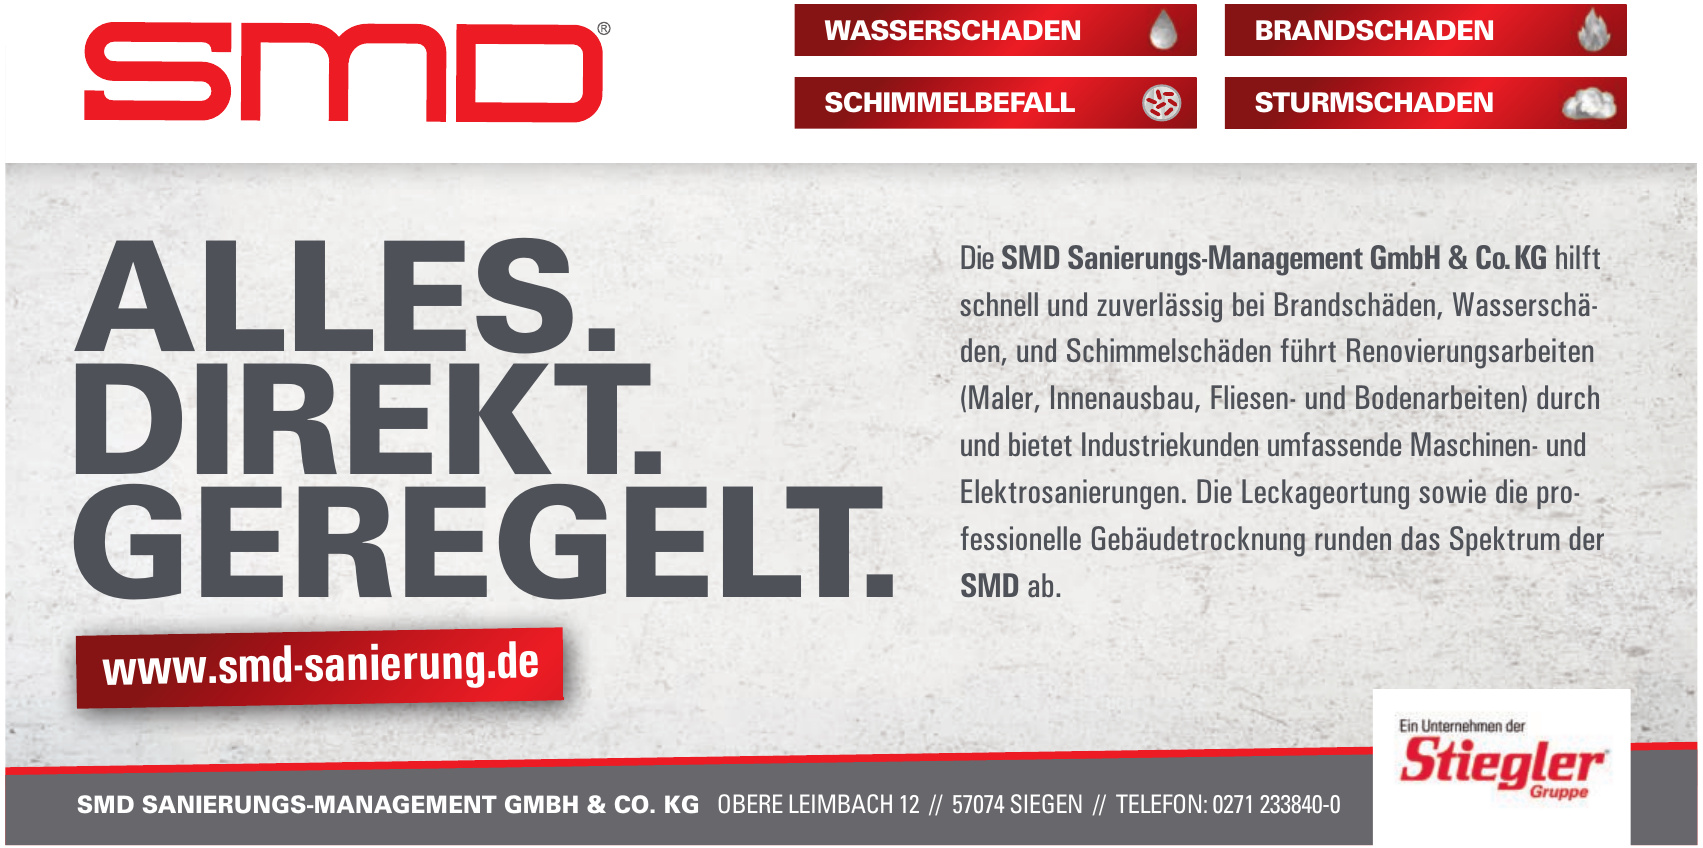 Die SMD Sanierungs-Management GmbH & Co. KG